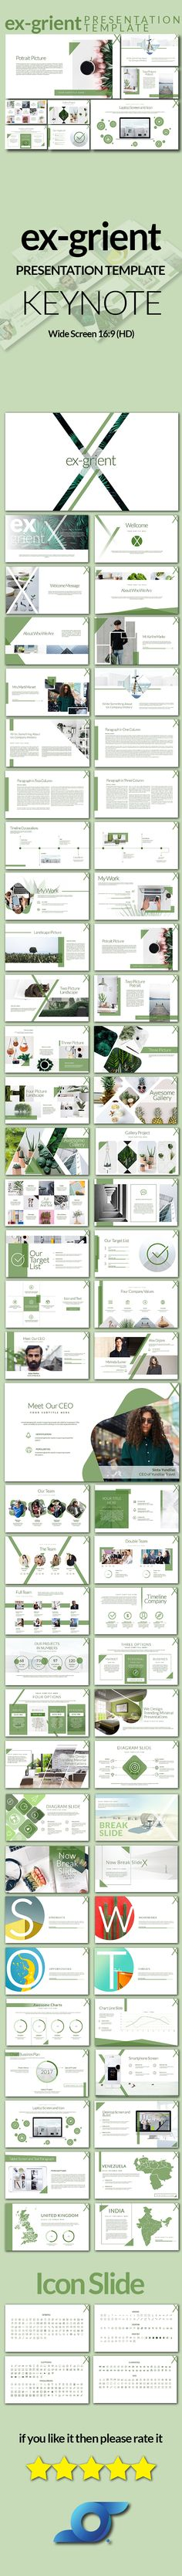 Prestige Powerpoint Presentation Template  Powerpoint